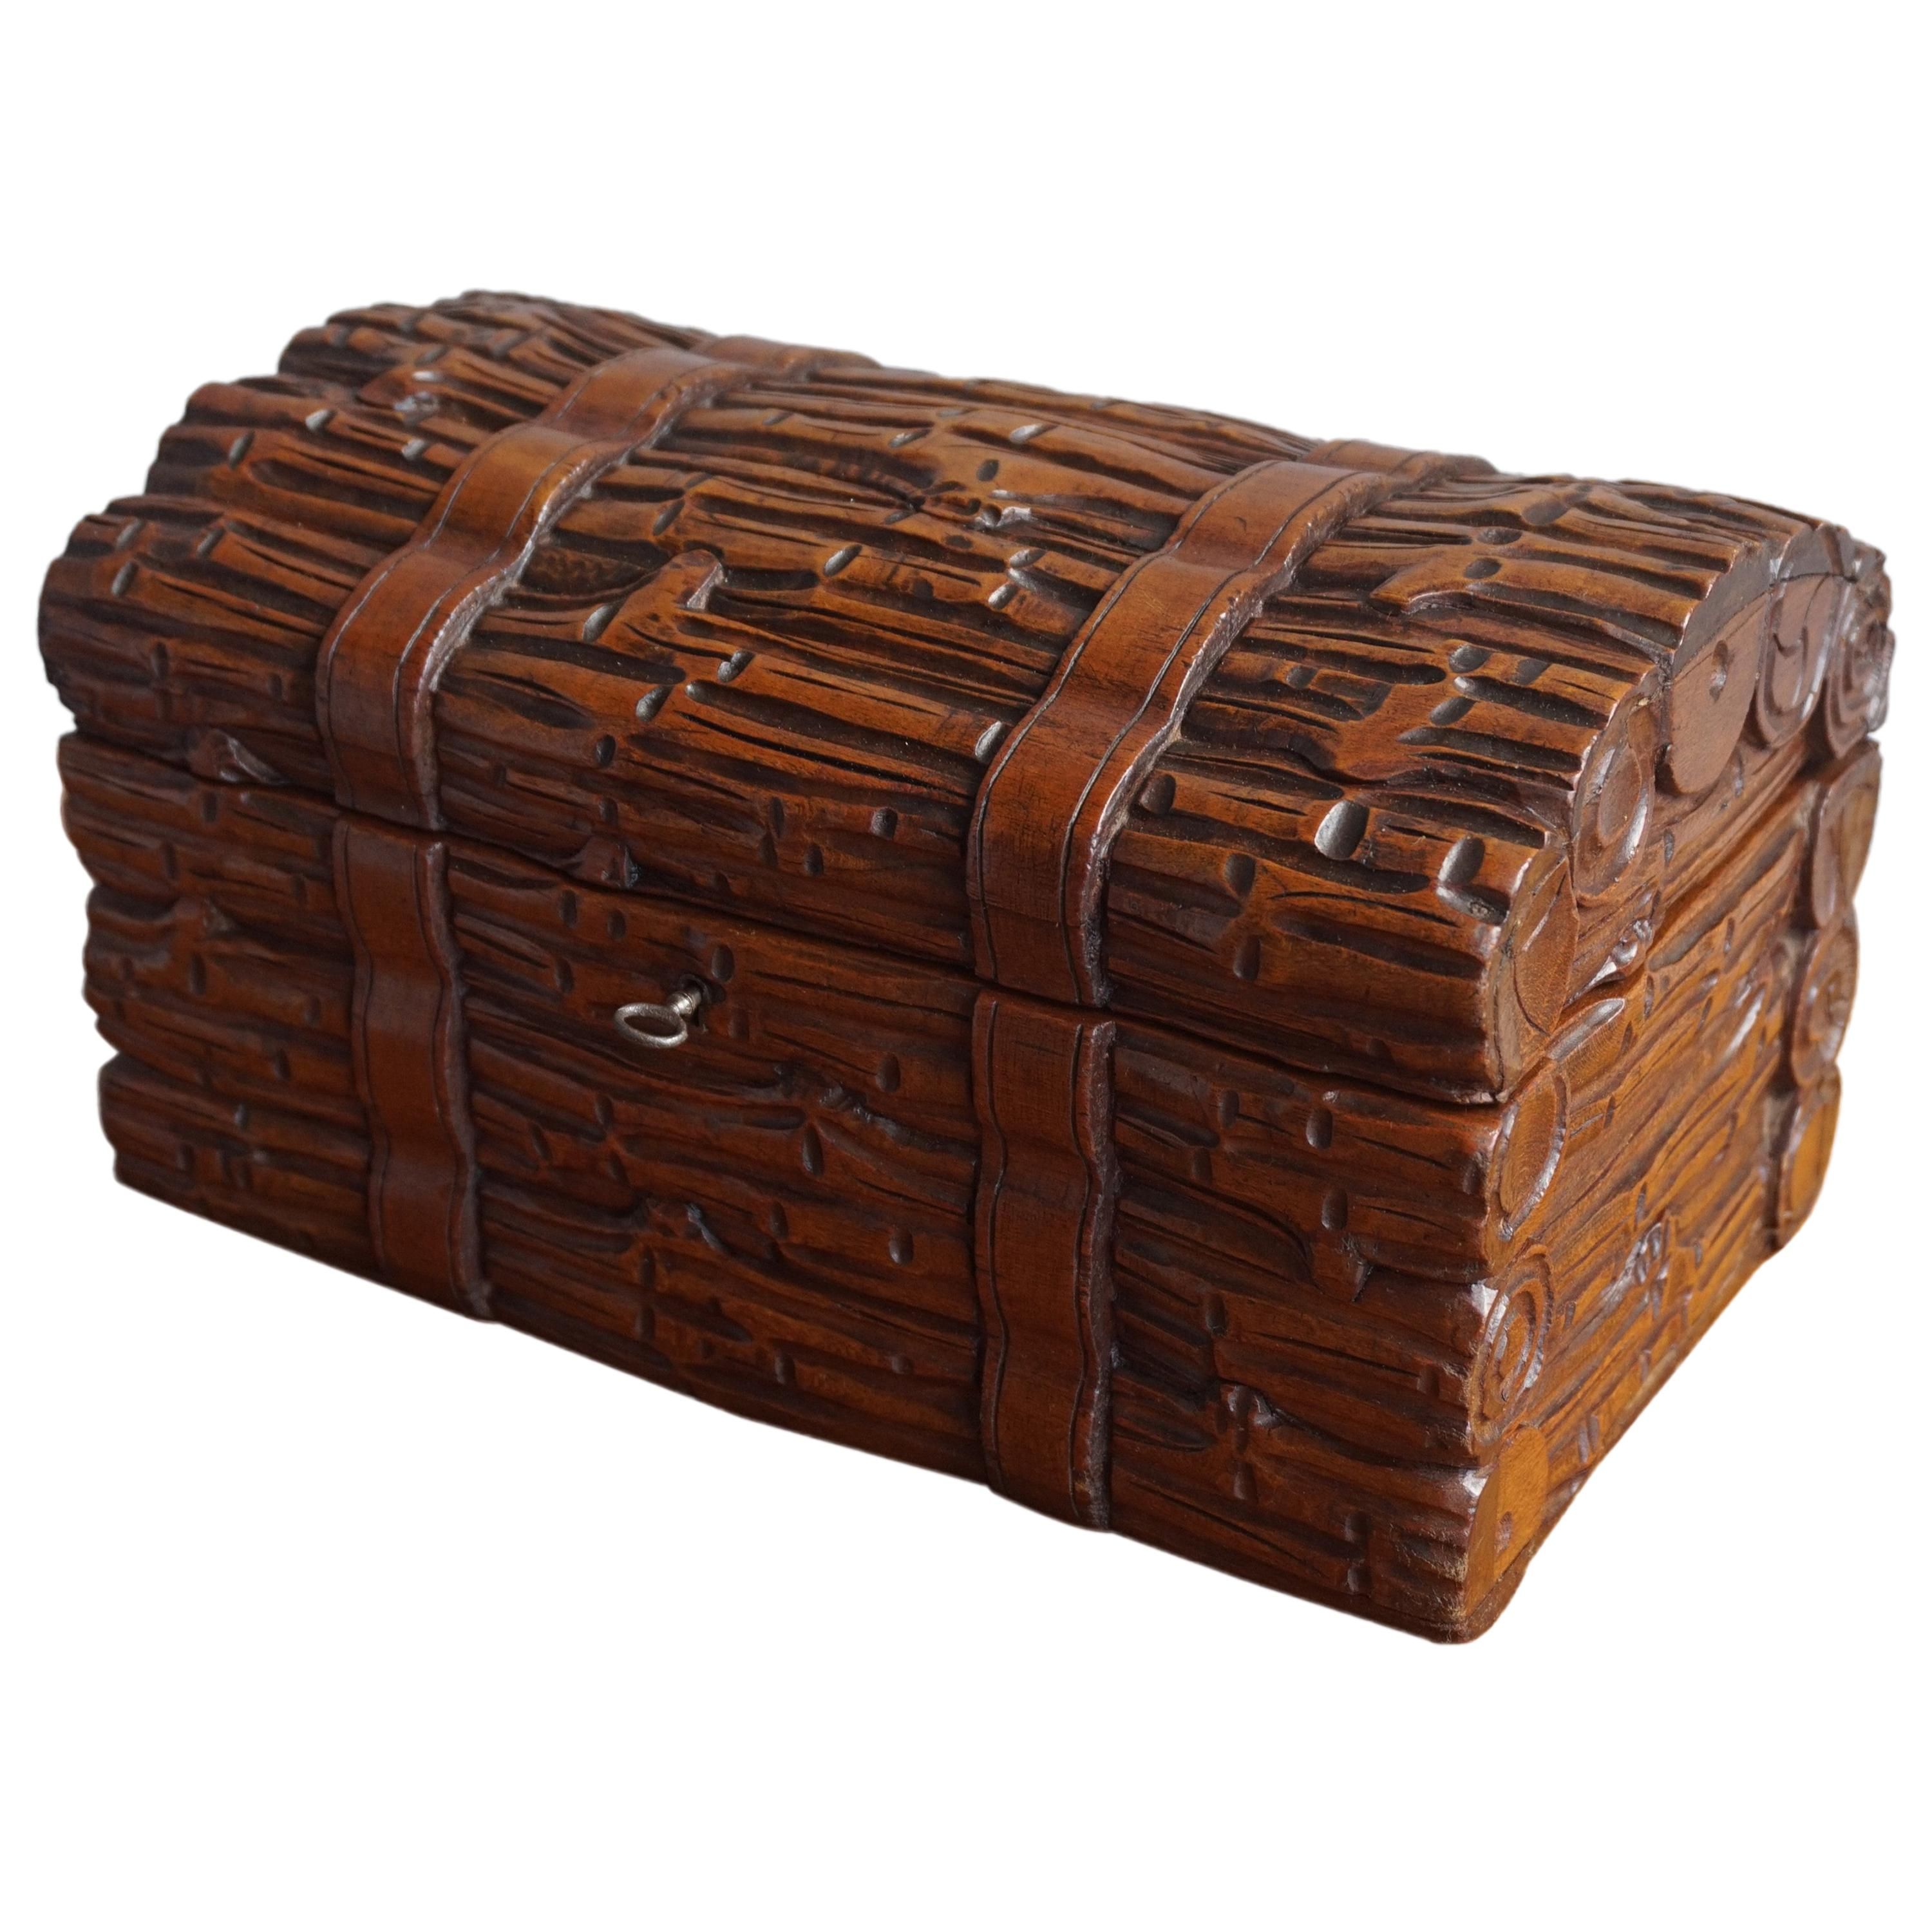 Antique Hand Carved Black Forest Wooden Chest or Trunk Shape Jewelry / Cigar Box